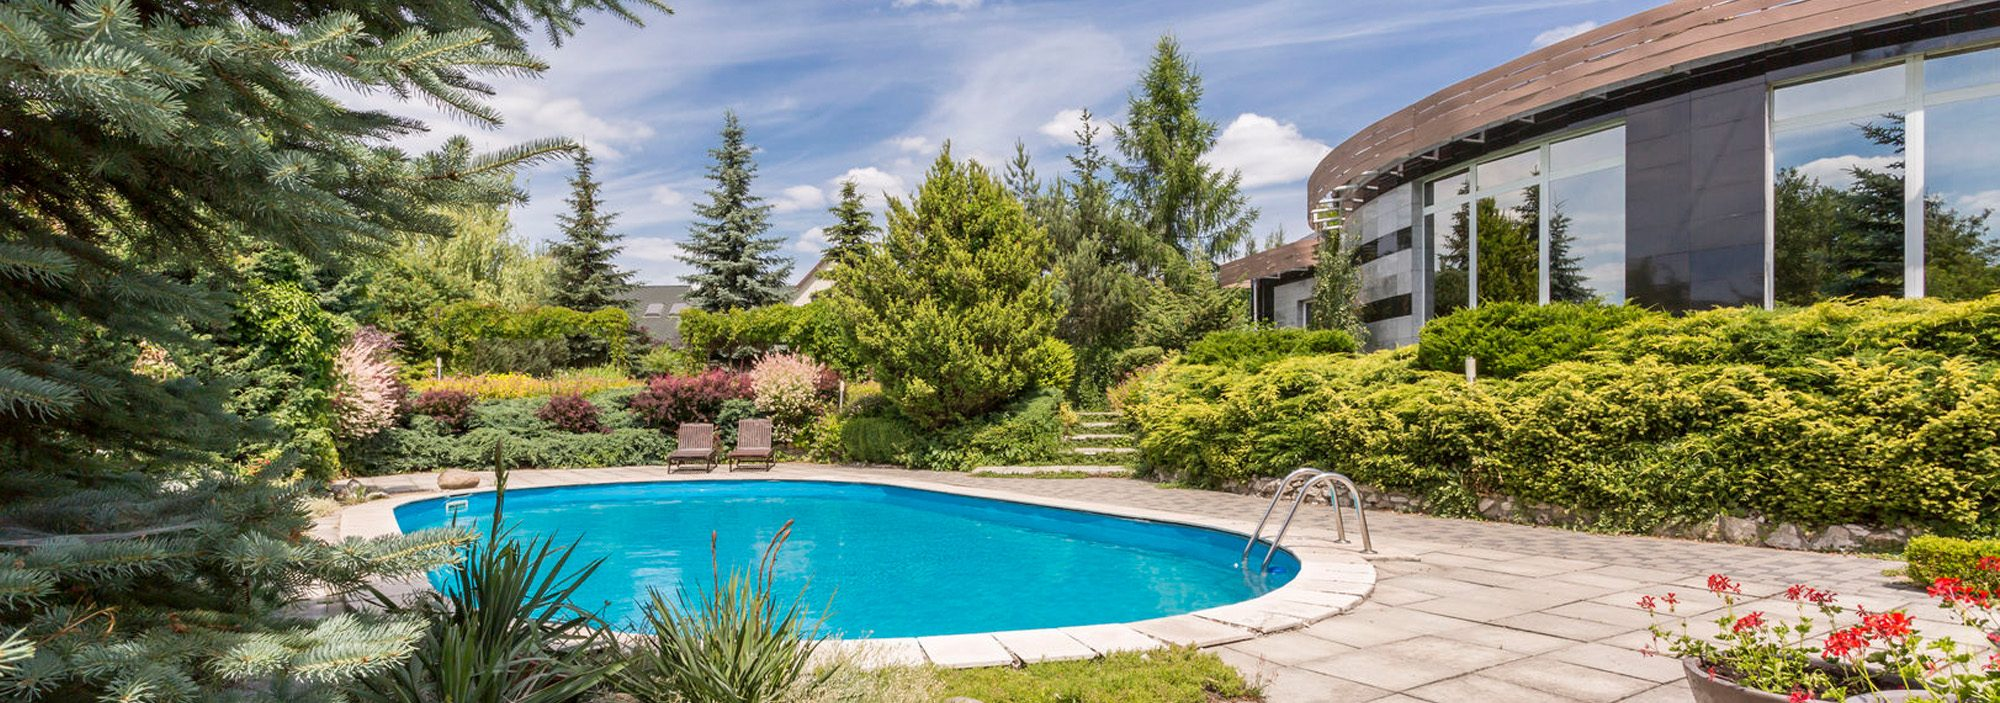 Fr pool elegant indoor with fr pool top with this time a for Camping chambery avec piscine